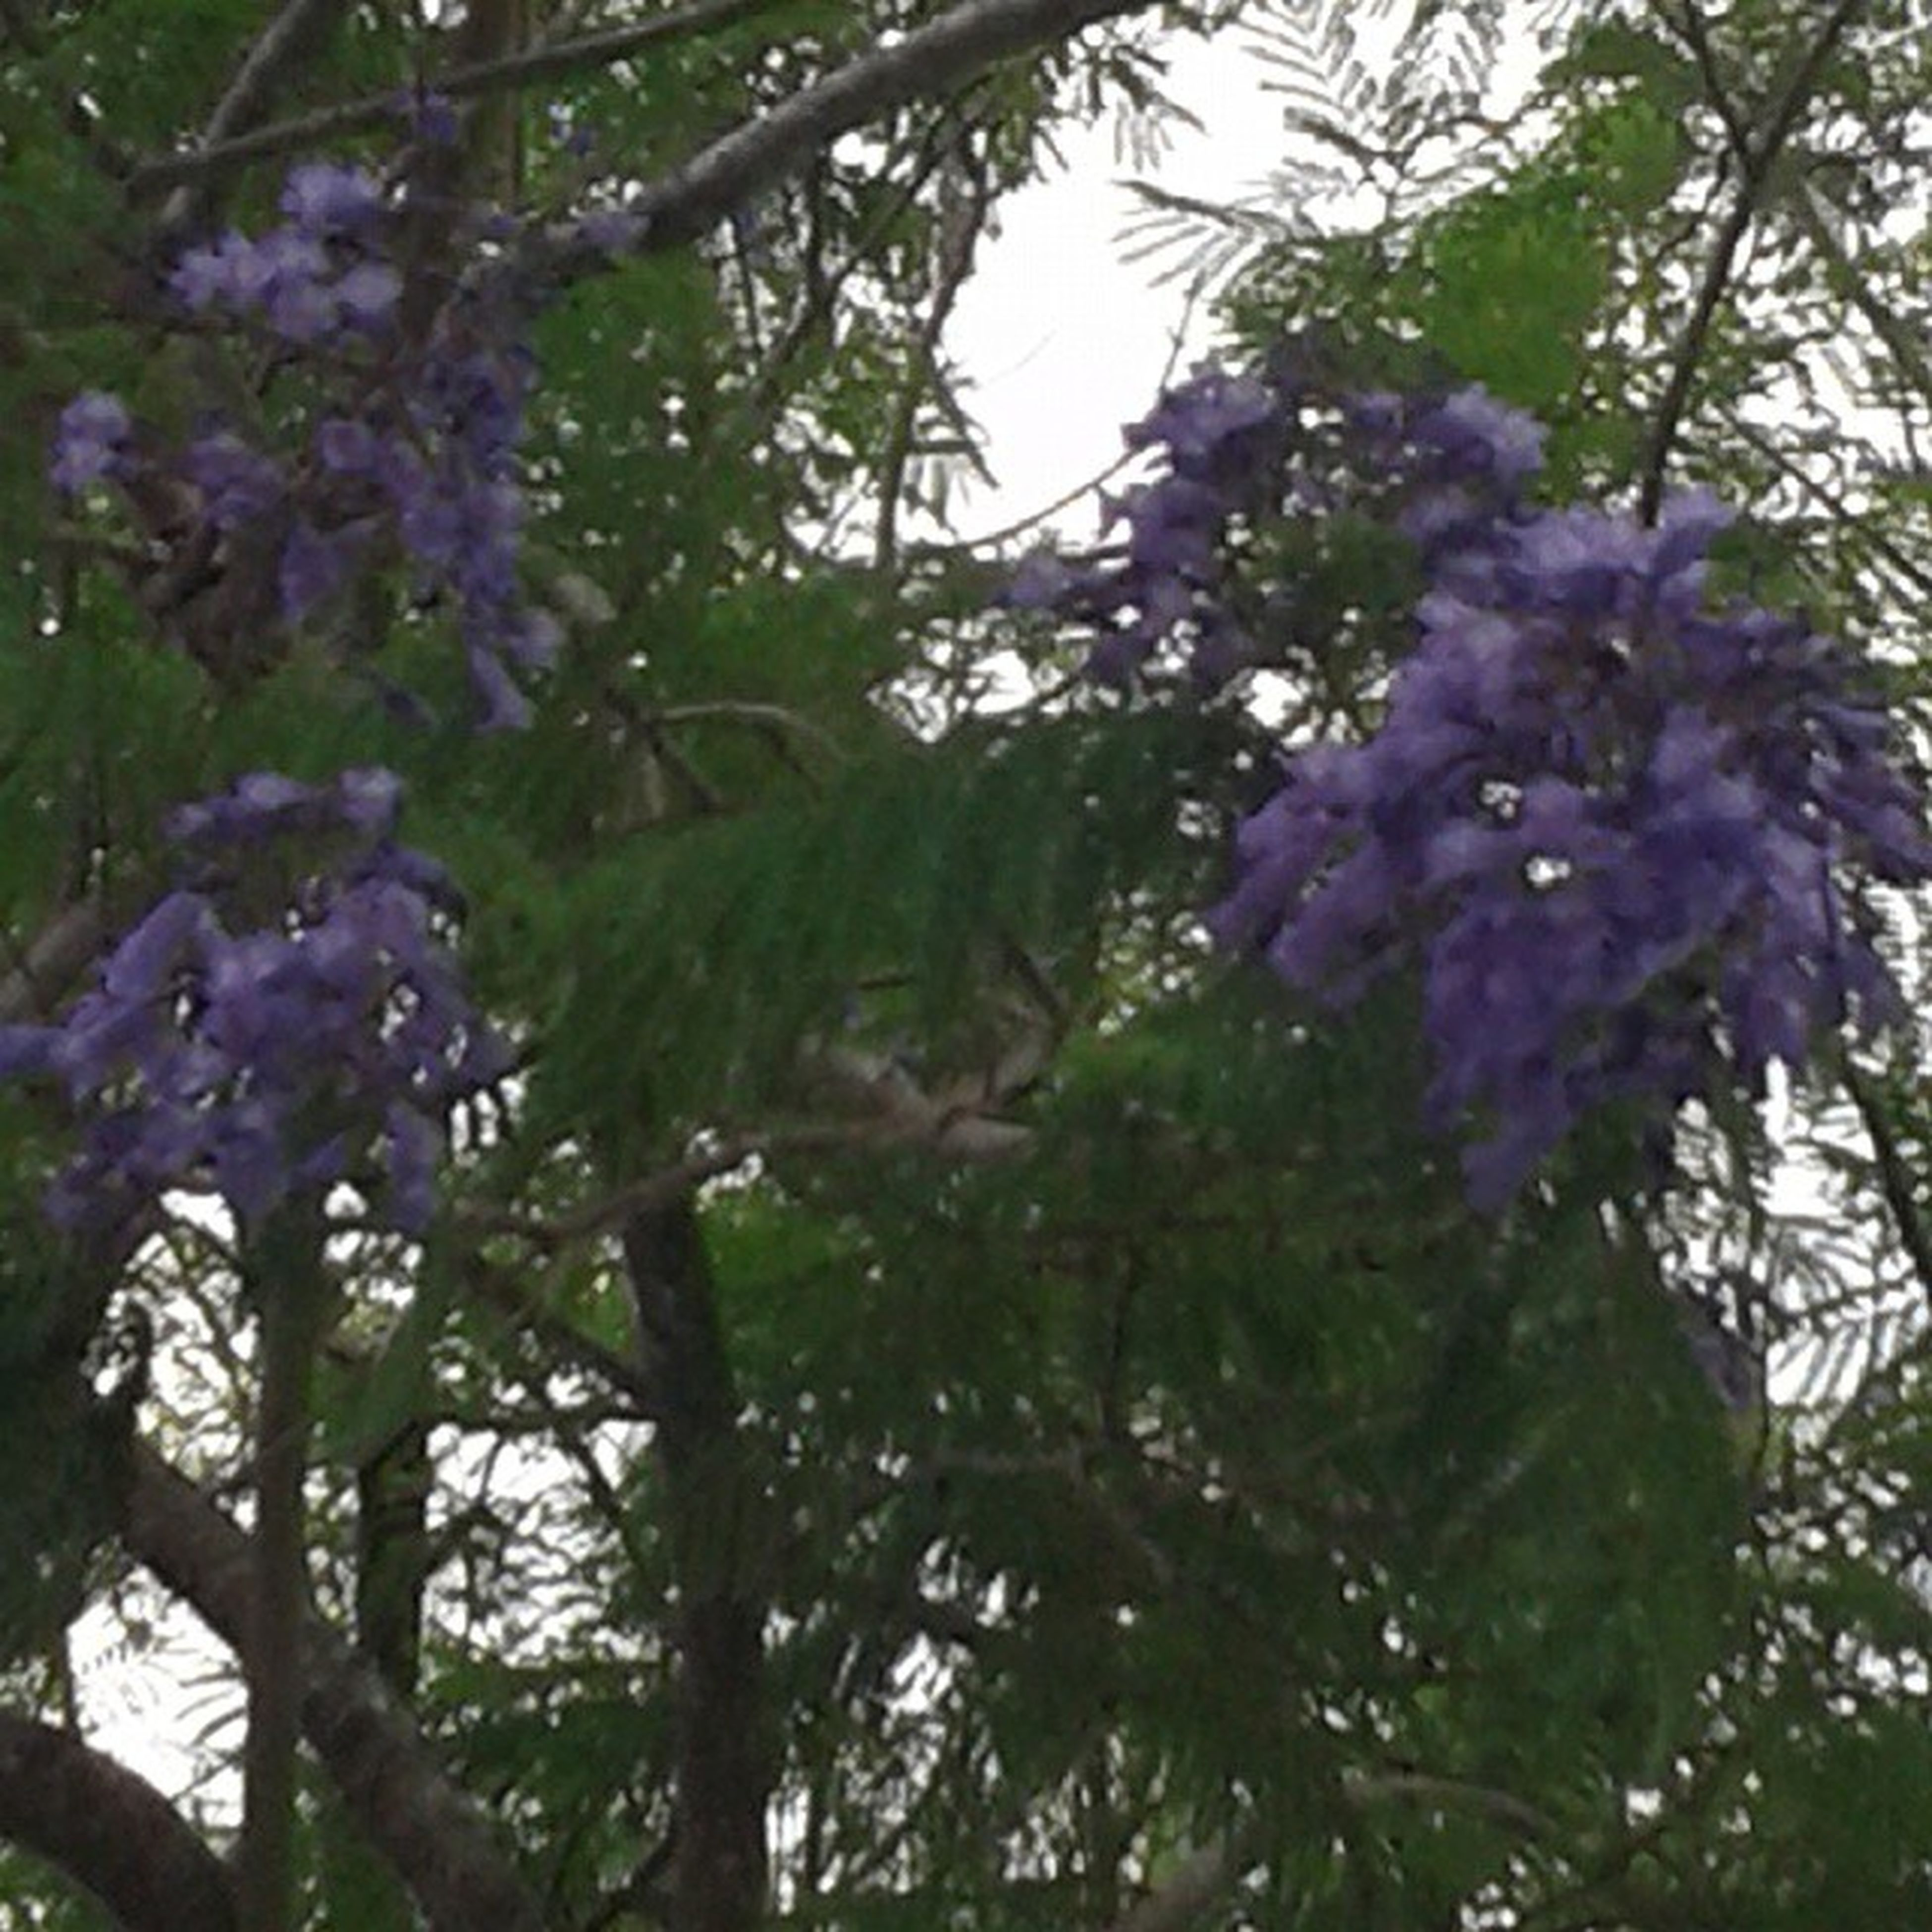 flower, growth, tree, freshness, beauty in nature, branch, nature, fragility, low angle view, blooming, purple, park - man made space, petal, in bloom, plant, close-up, blossom, day, focus on foreground, sunlight